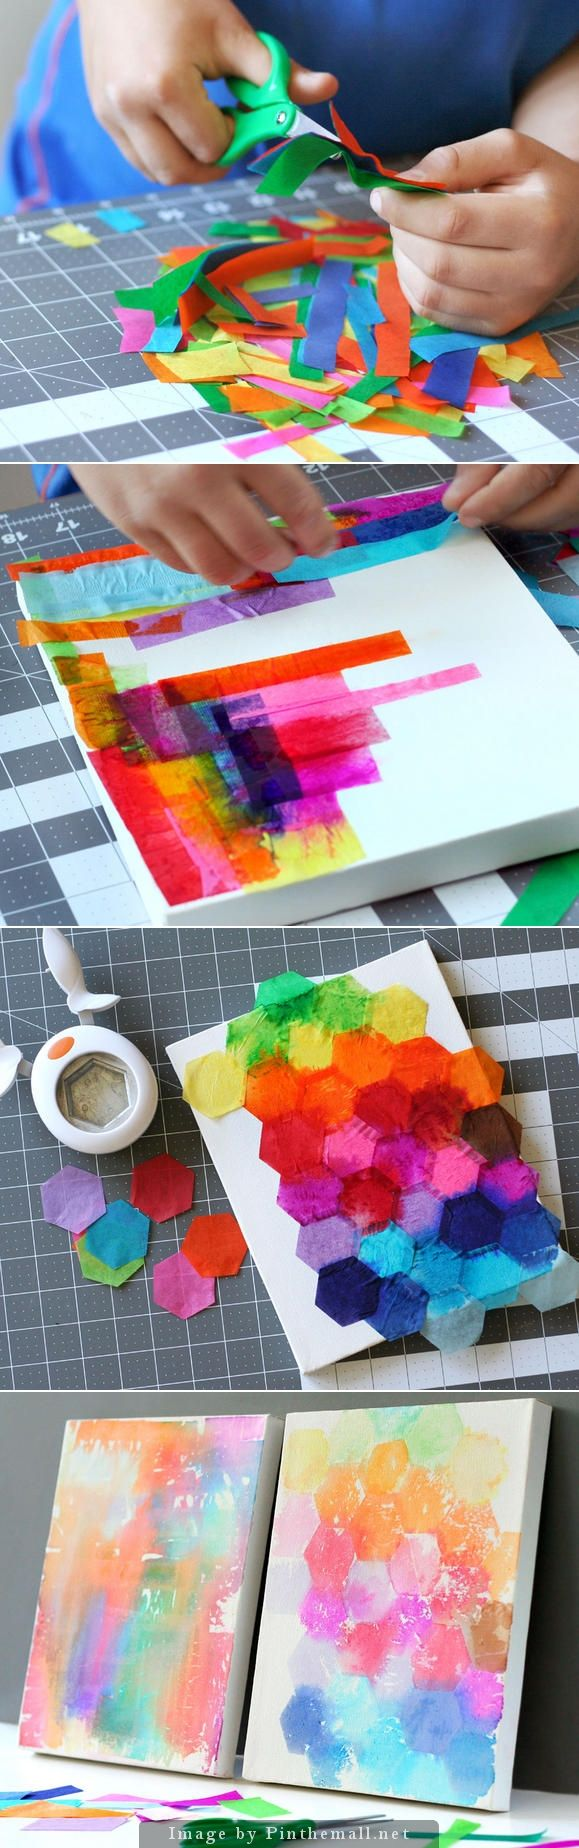 best handmade diy images on pinterest